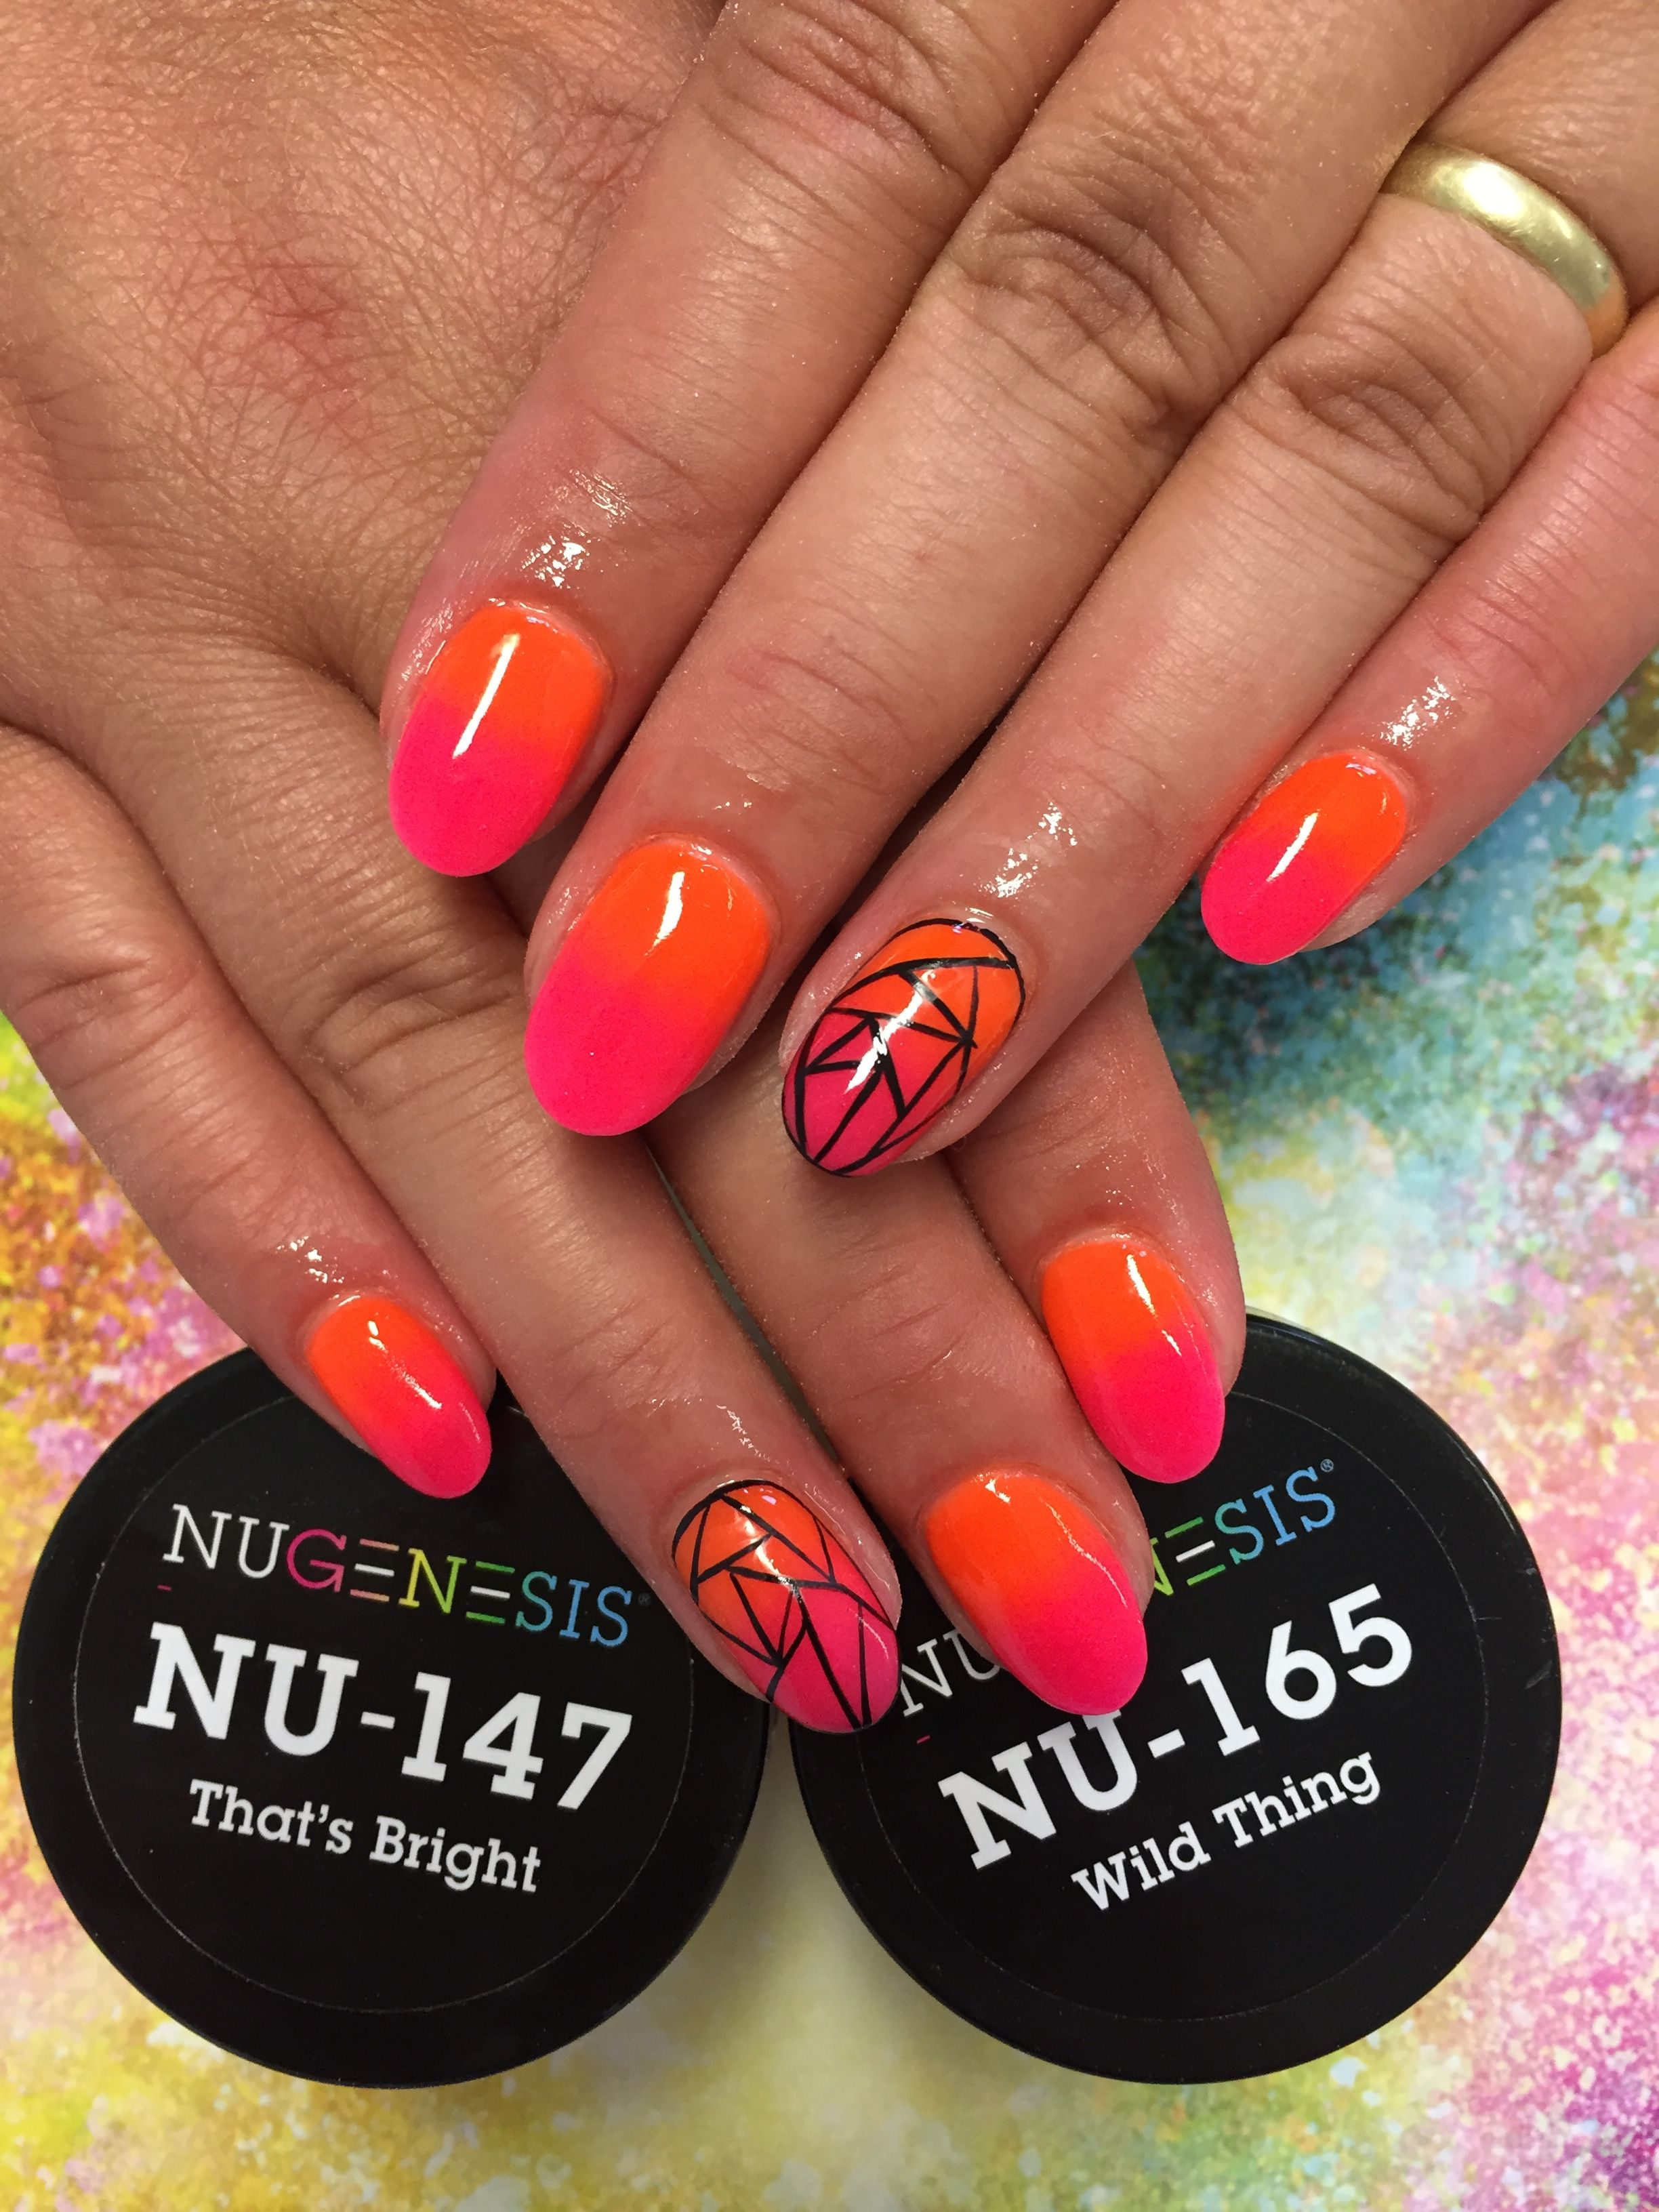 Ombre Summernails With Nugenesis Dipping Powder Dip Powder Nails Fall Toe Nails Fake Nails